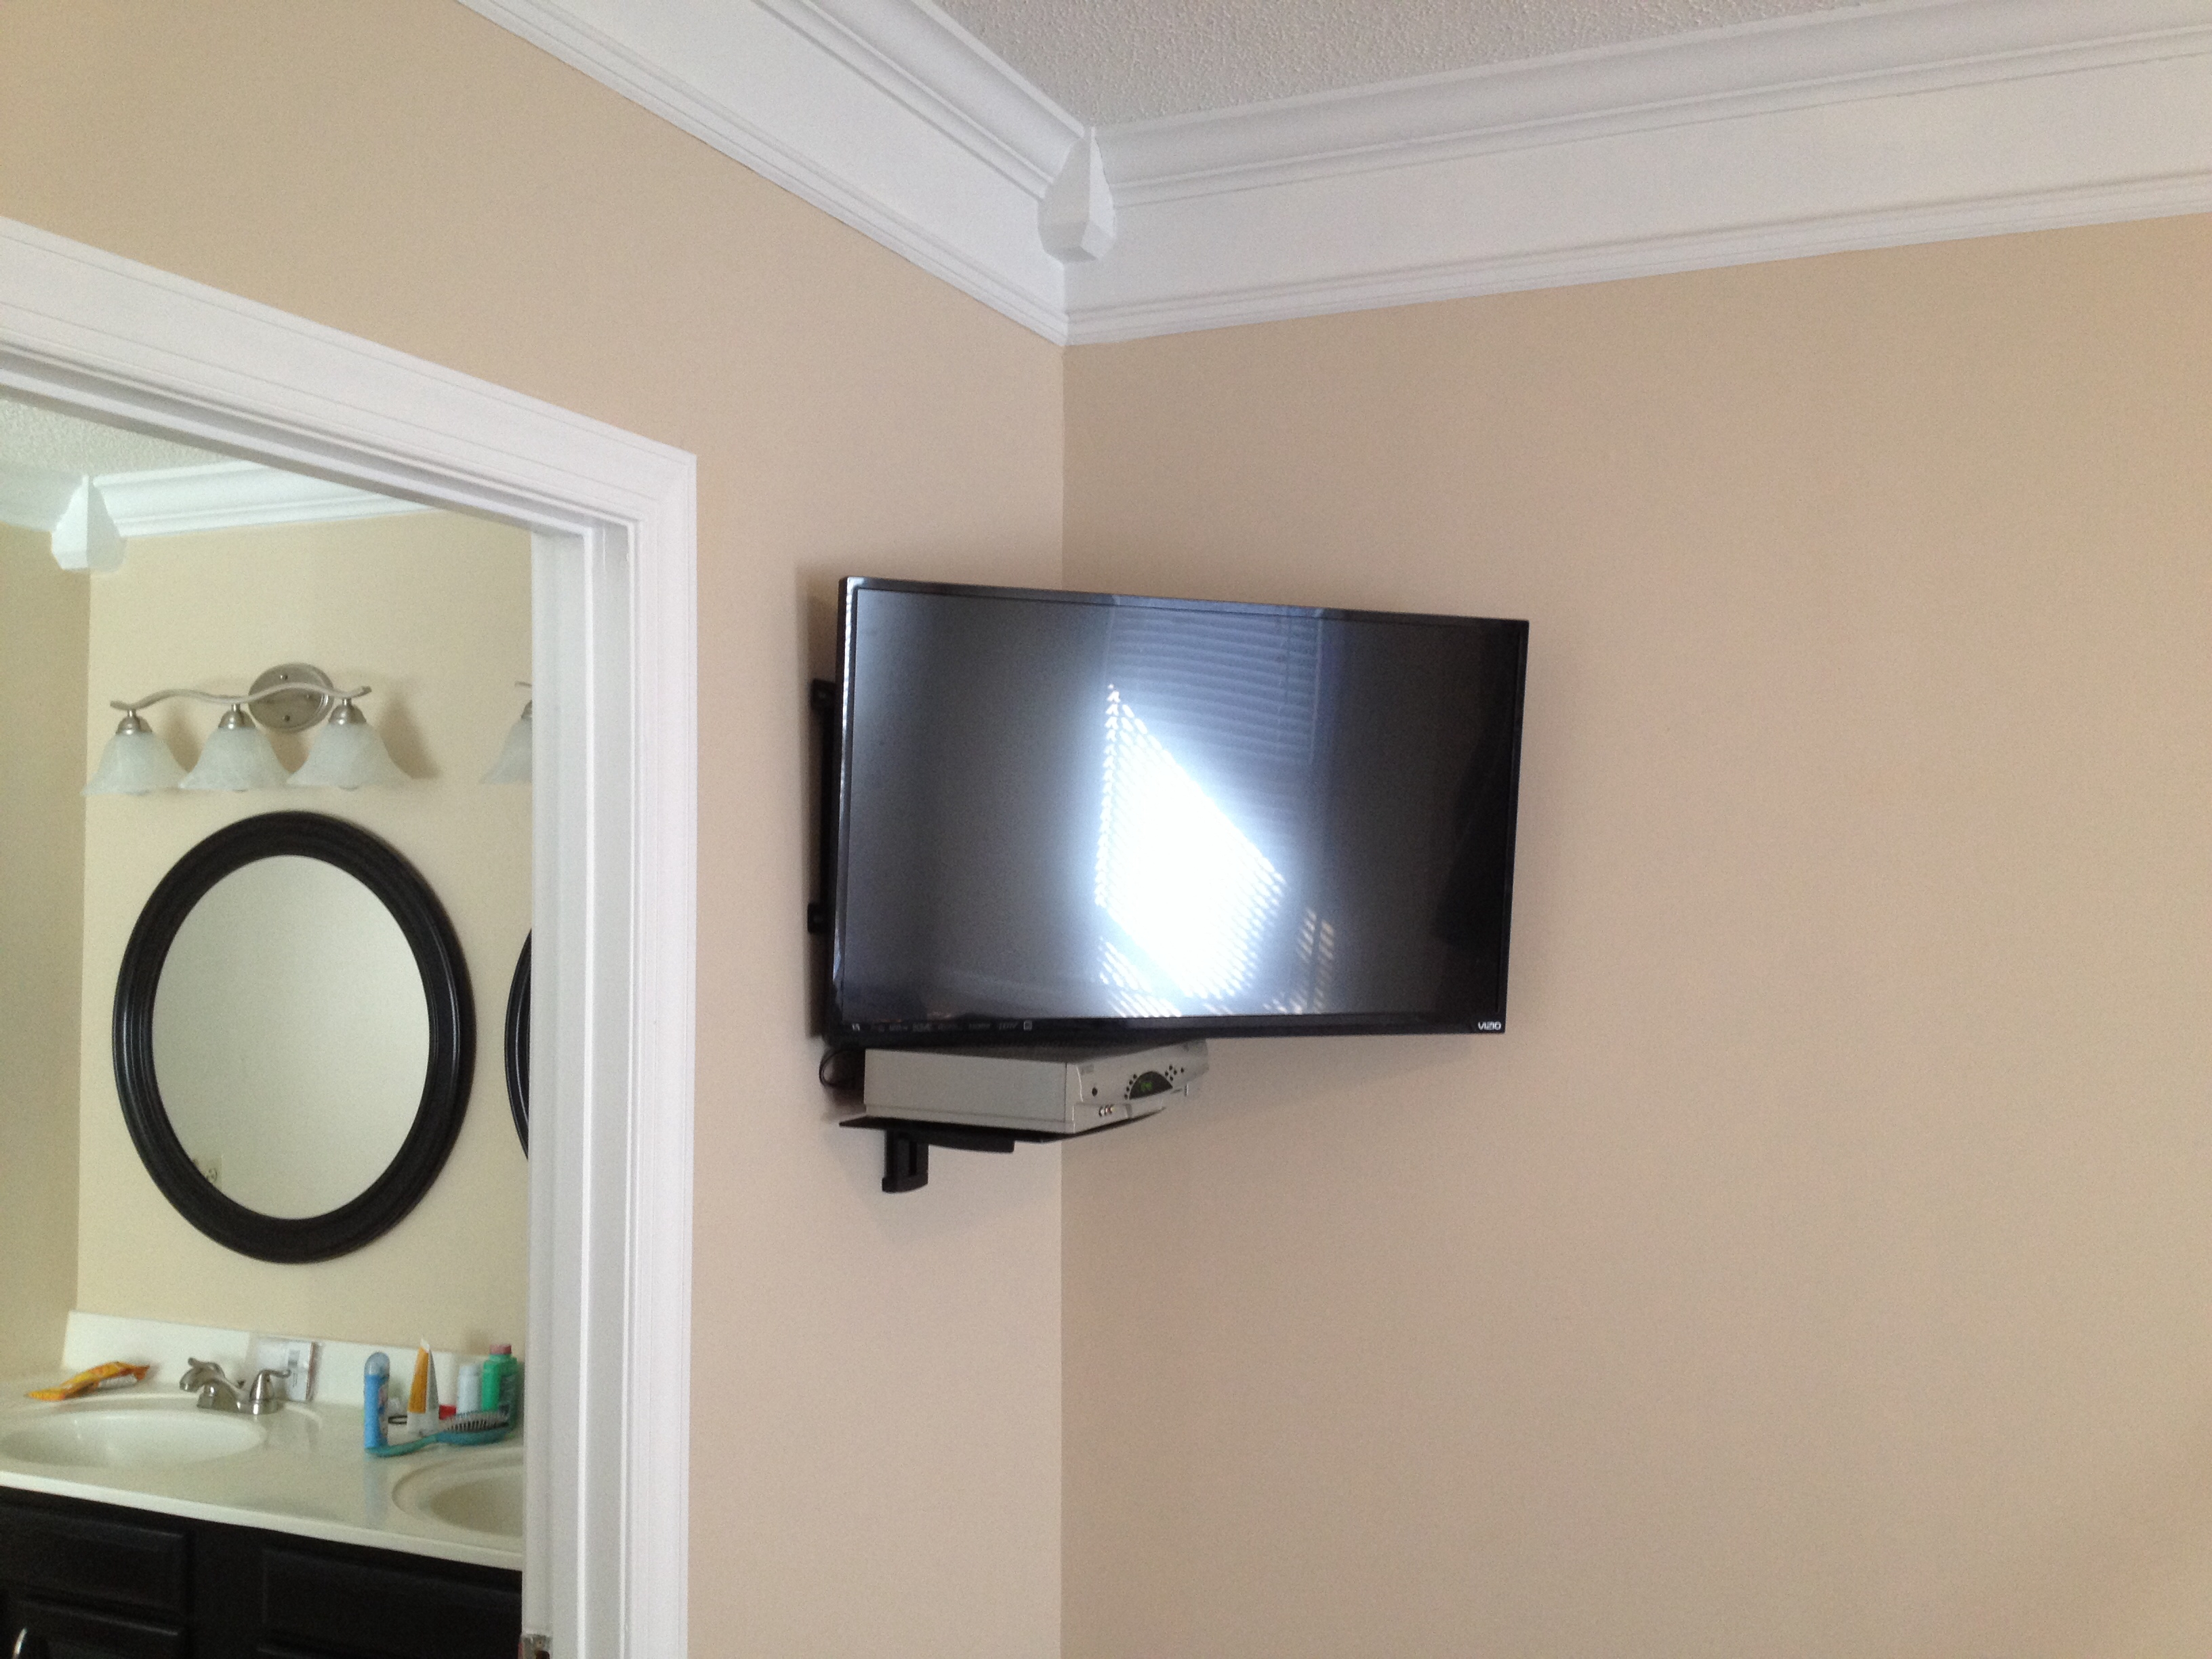 Led Tv Wall Mount Installation With Floating Glass Shelf For Cable Within Corner Shelf For Dvd Player On Wall (Image 10 of 15)